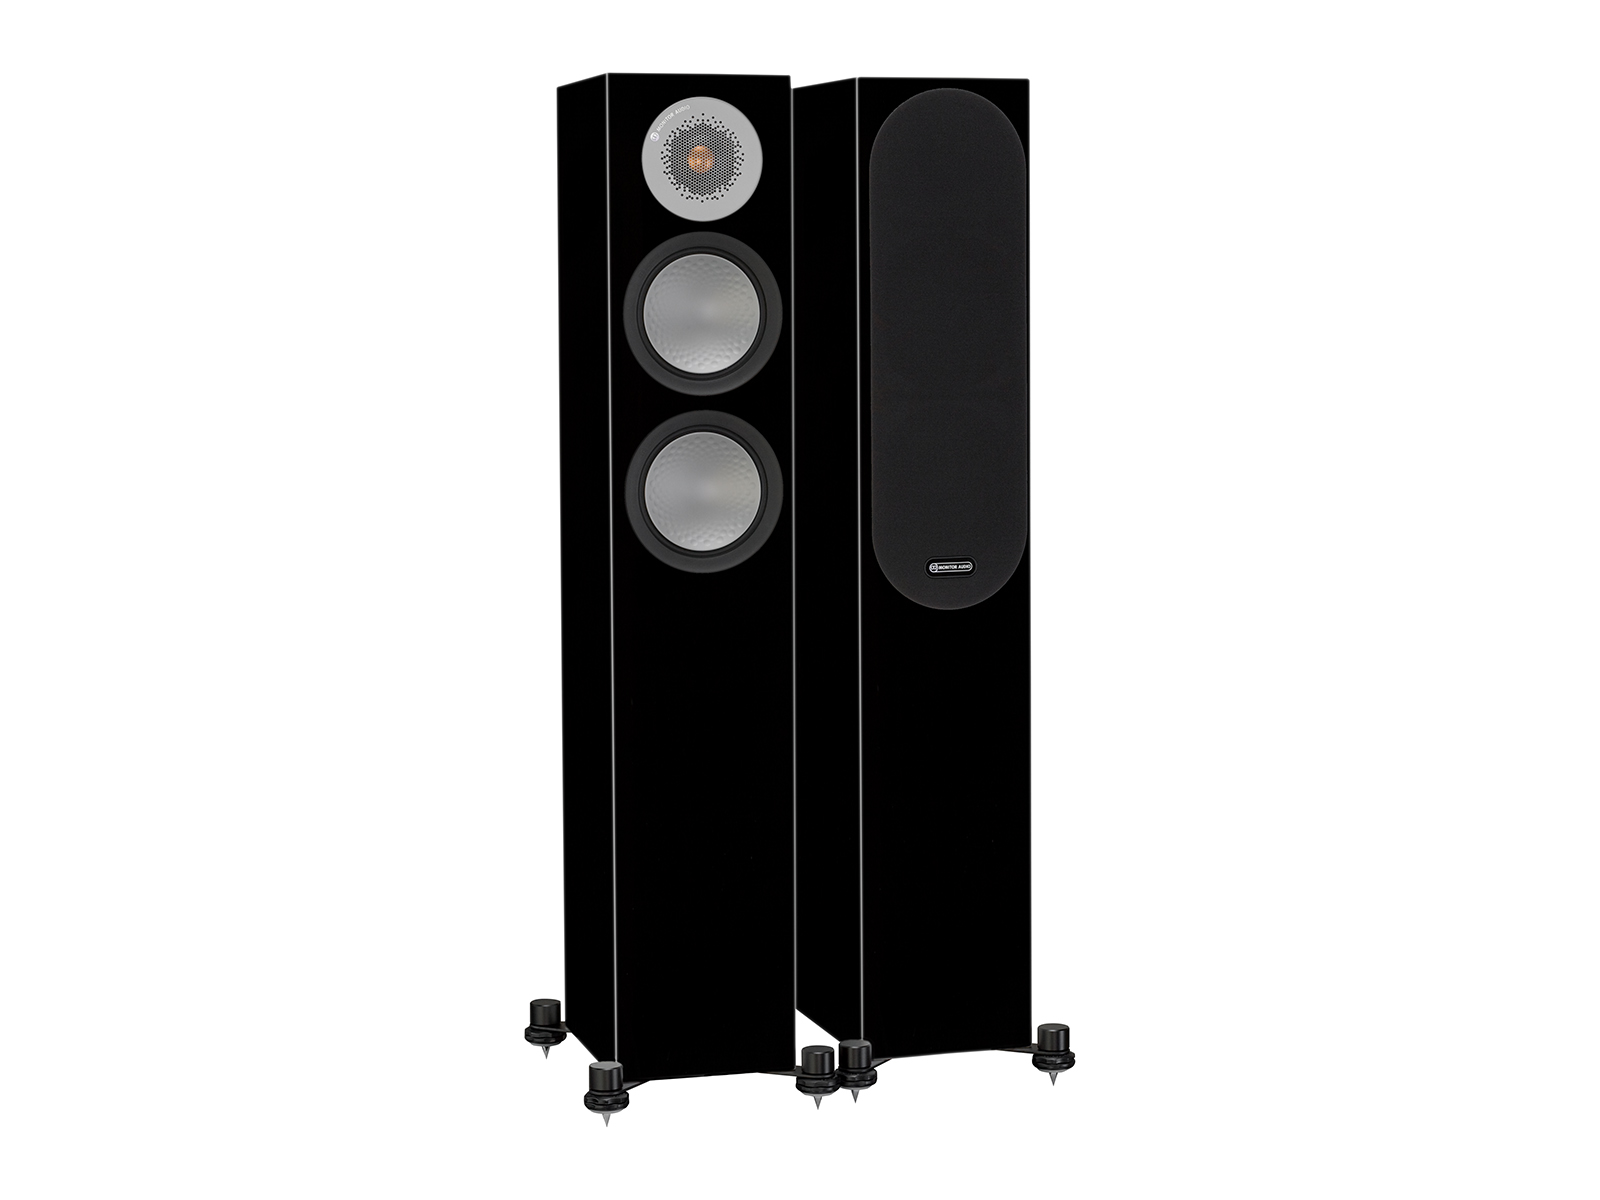 Silver 200, floorstanding speakers, with and without grille in a high gloss black finish.